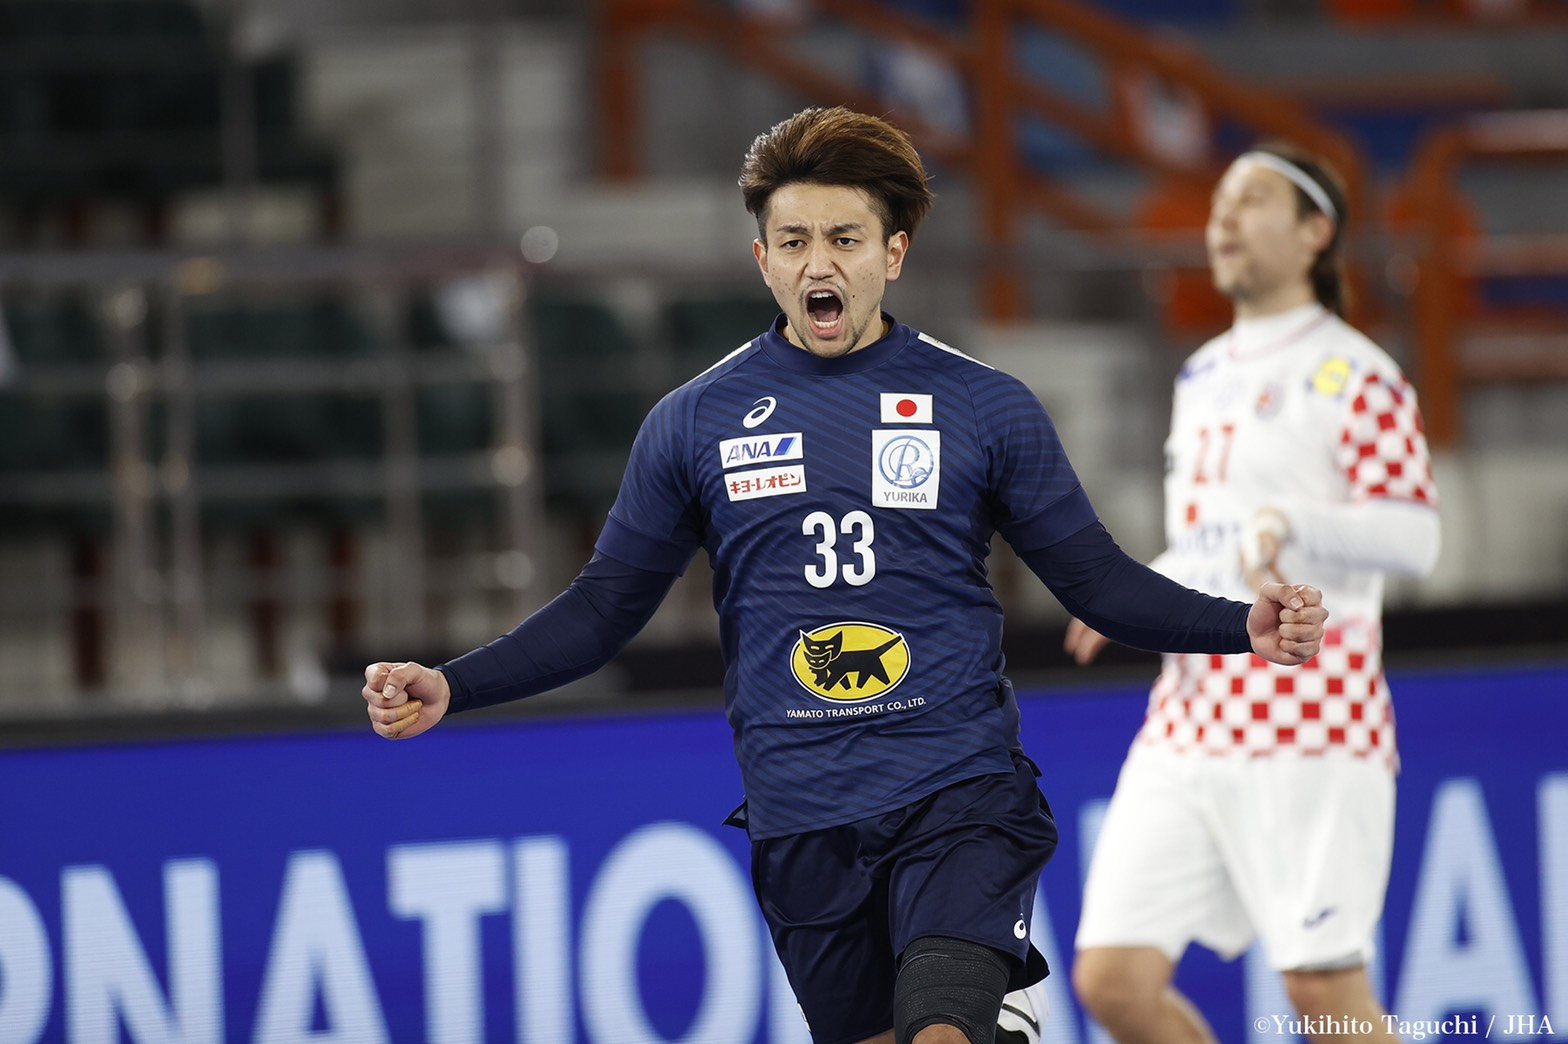 Player of the matchに選ばれた東江